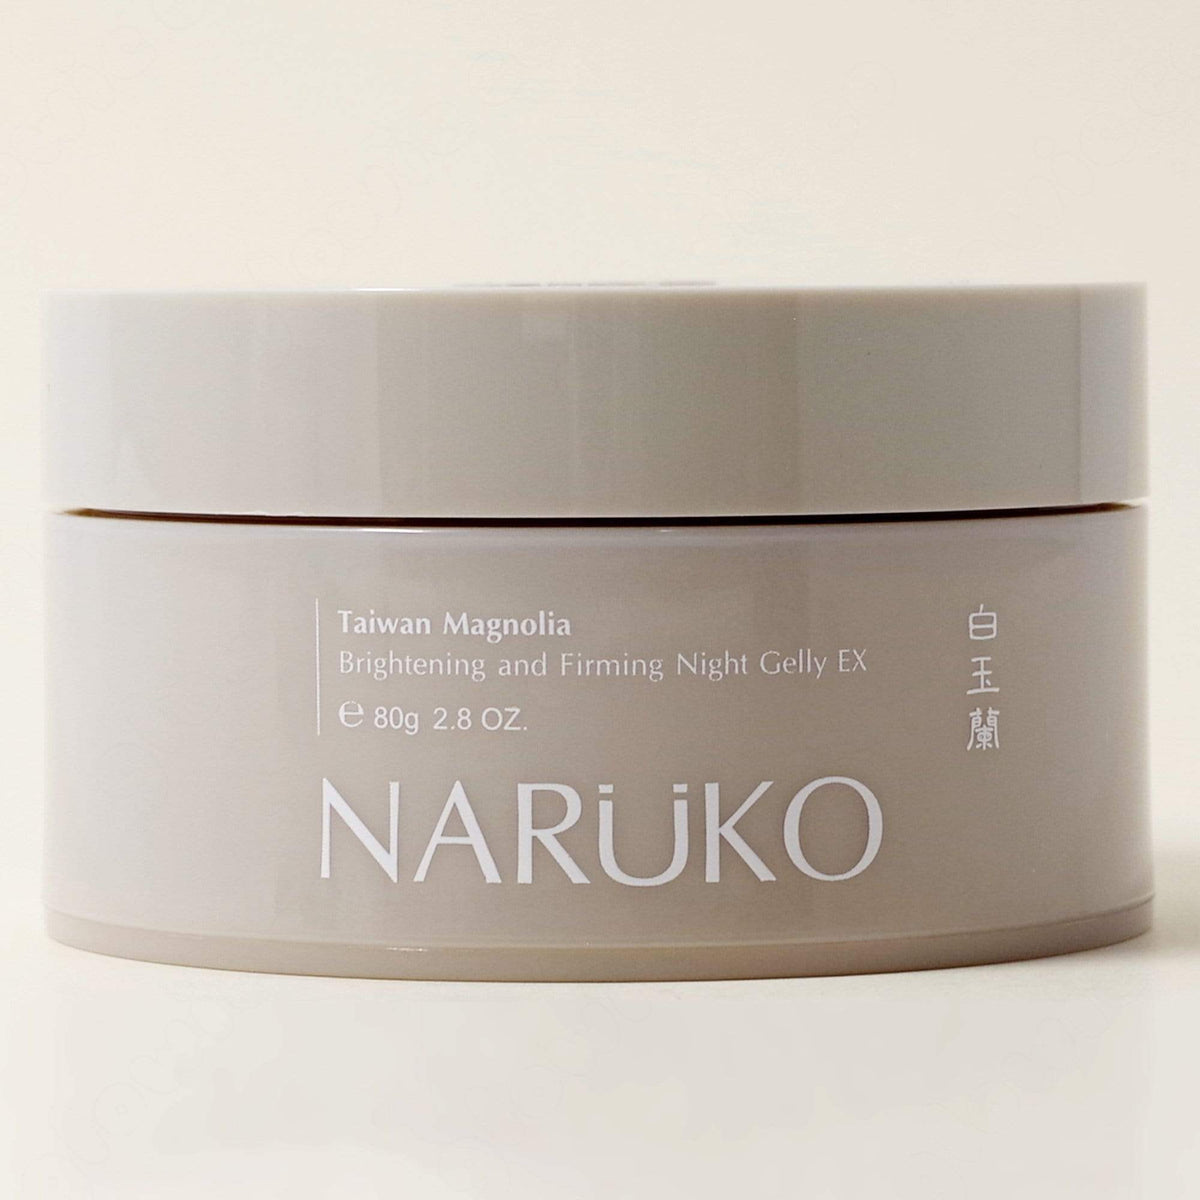 Naruko Taiwan Magnolia Brightening and Firming Night Gelly